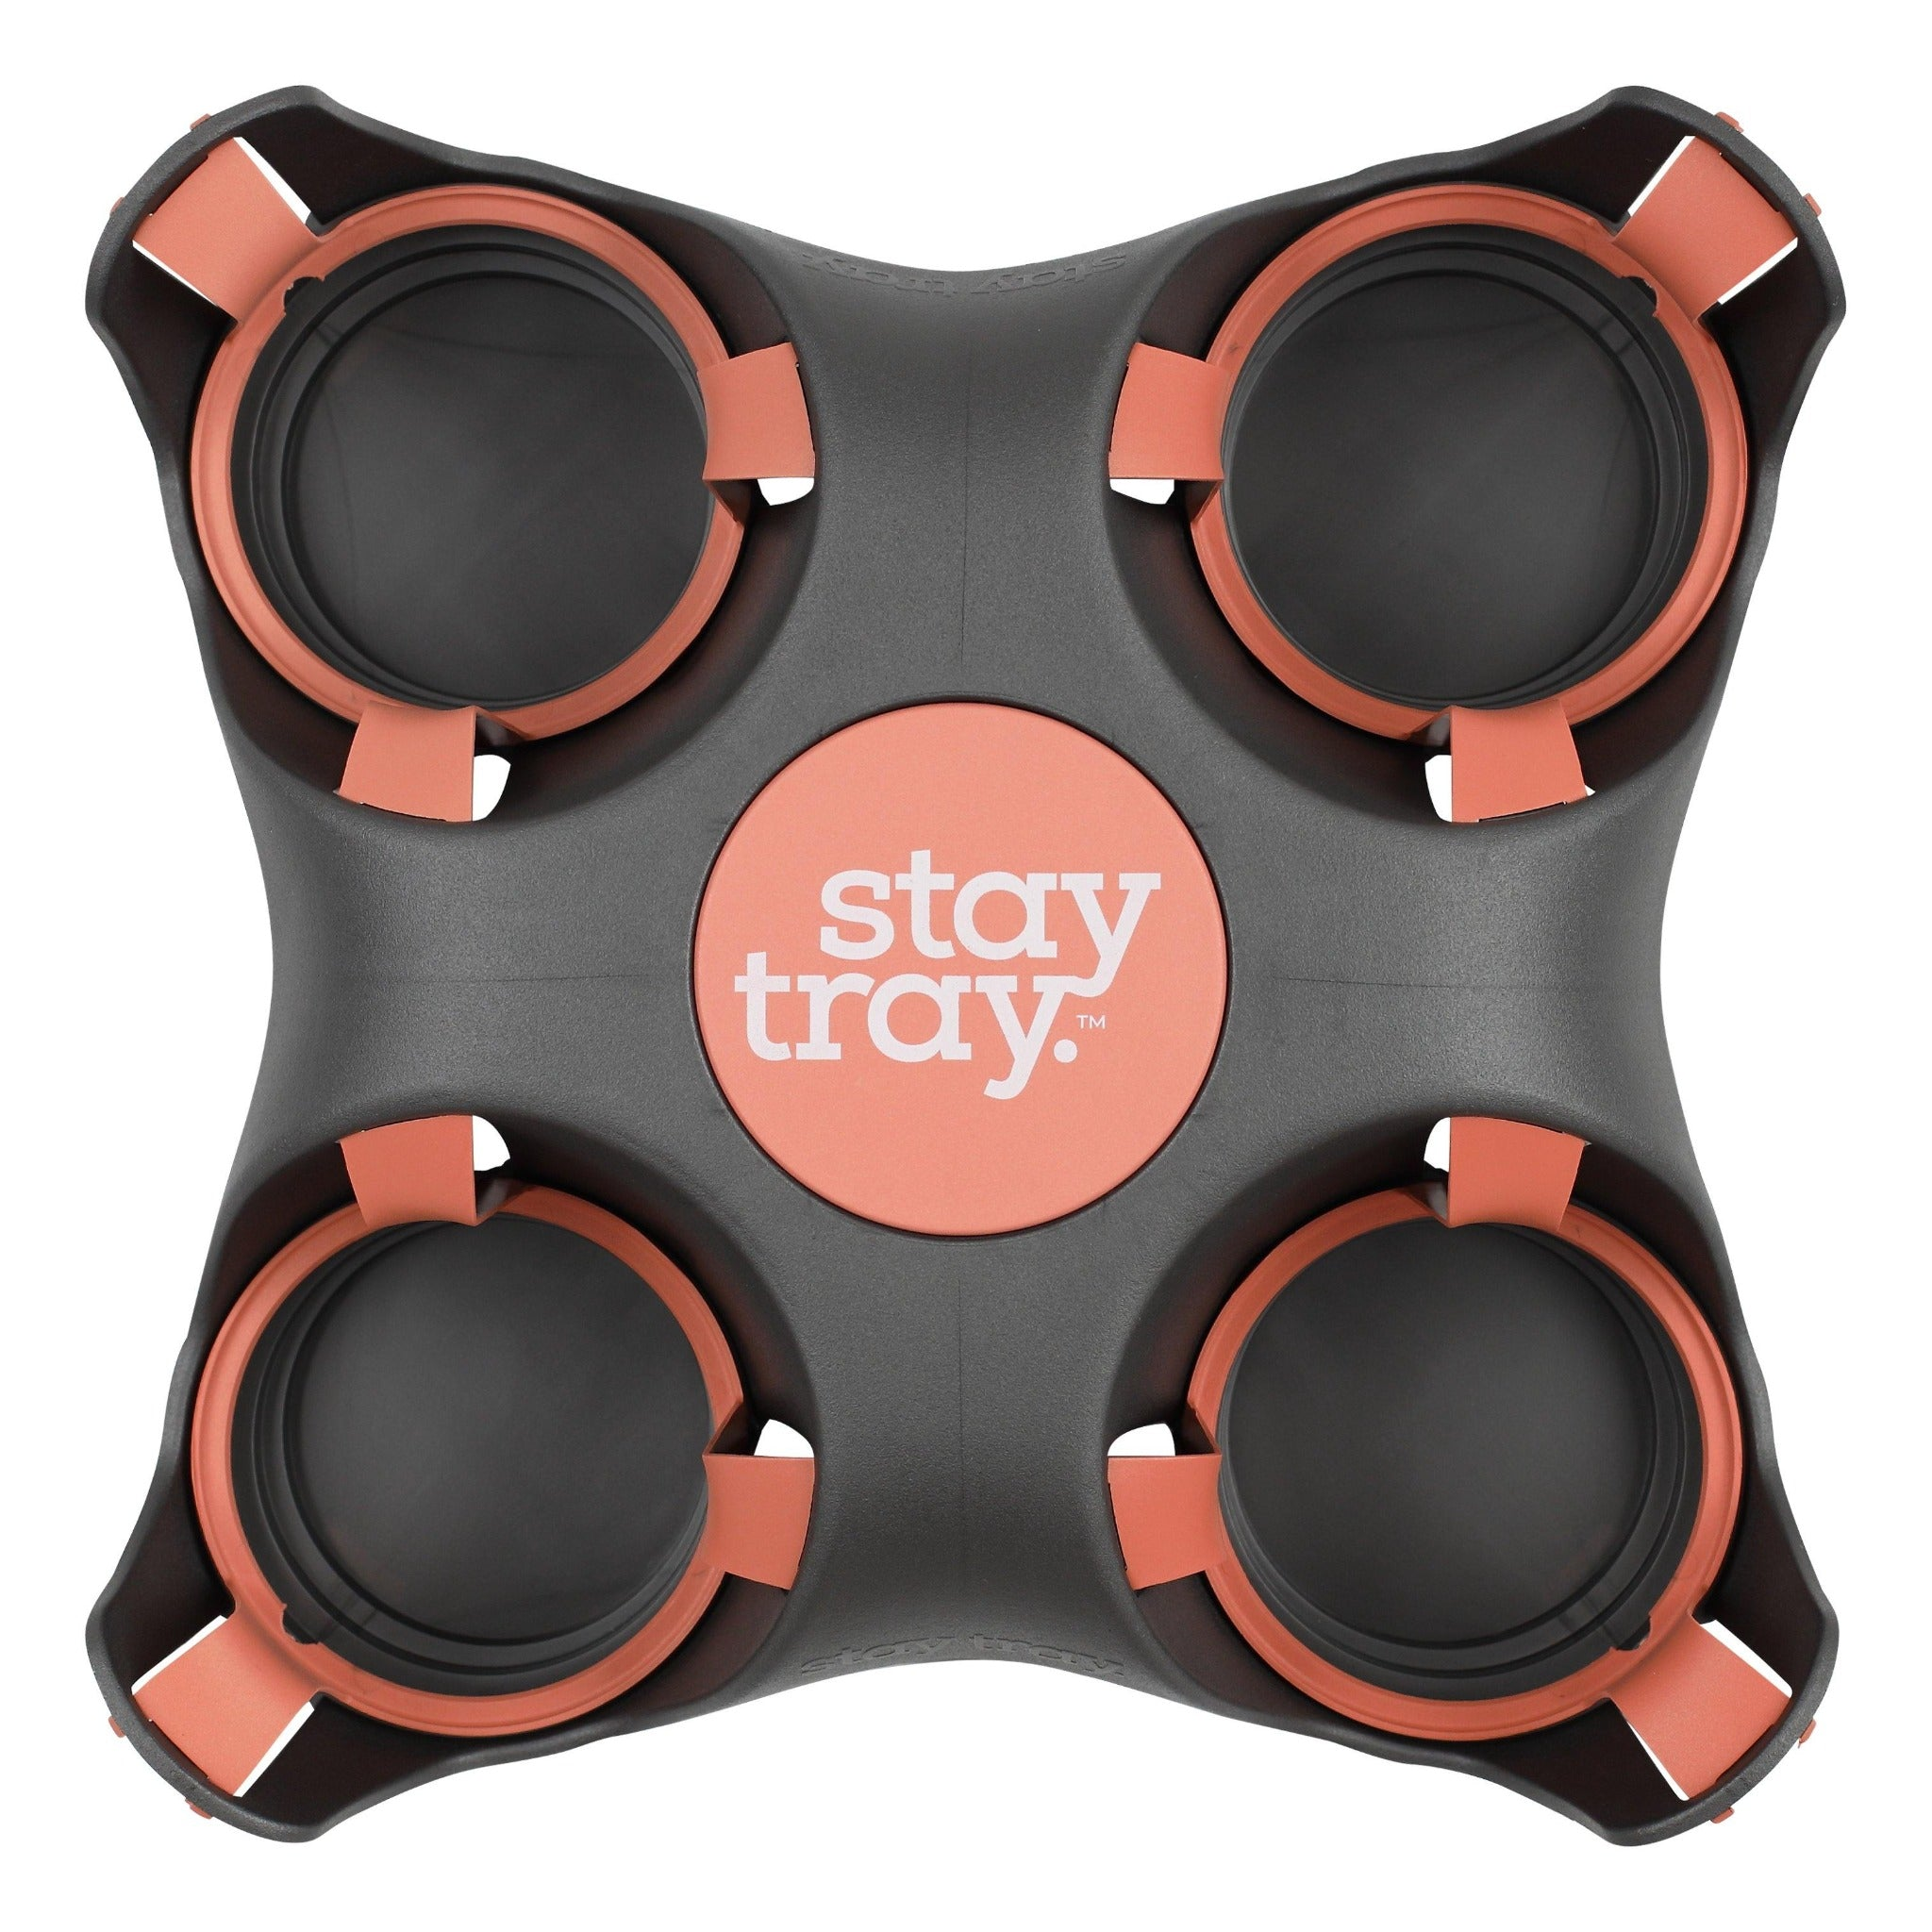 Stay tray Best Seller 'Good Sport' Reusable Drinks Tray Made In Australia